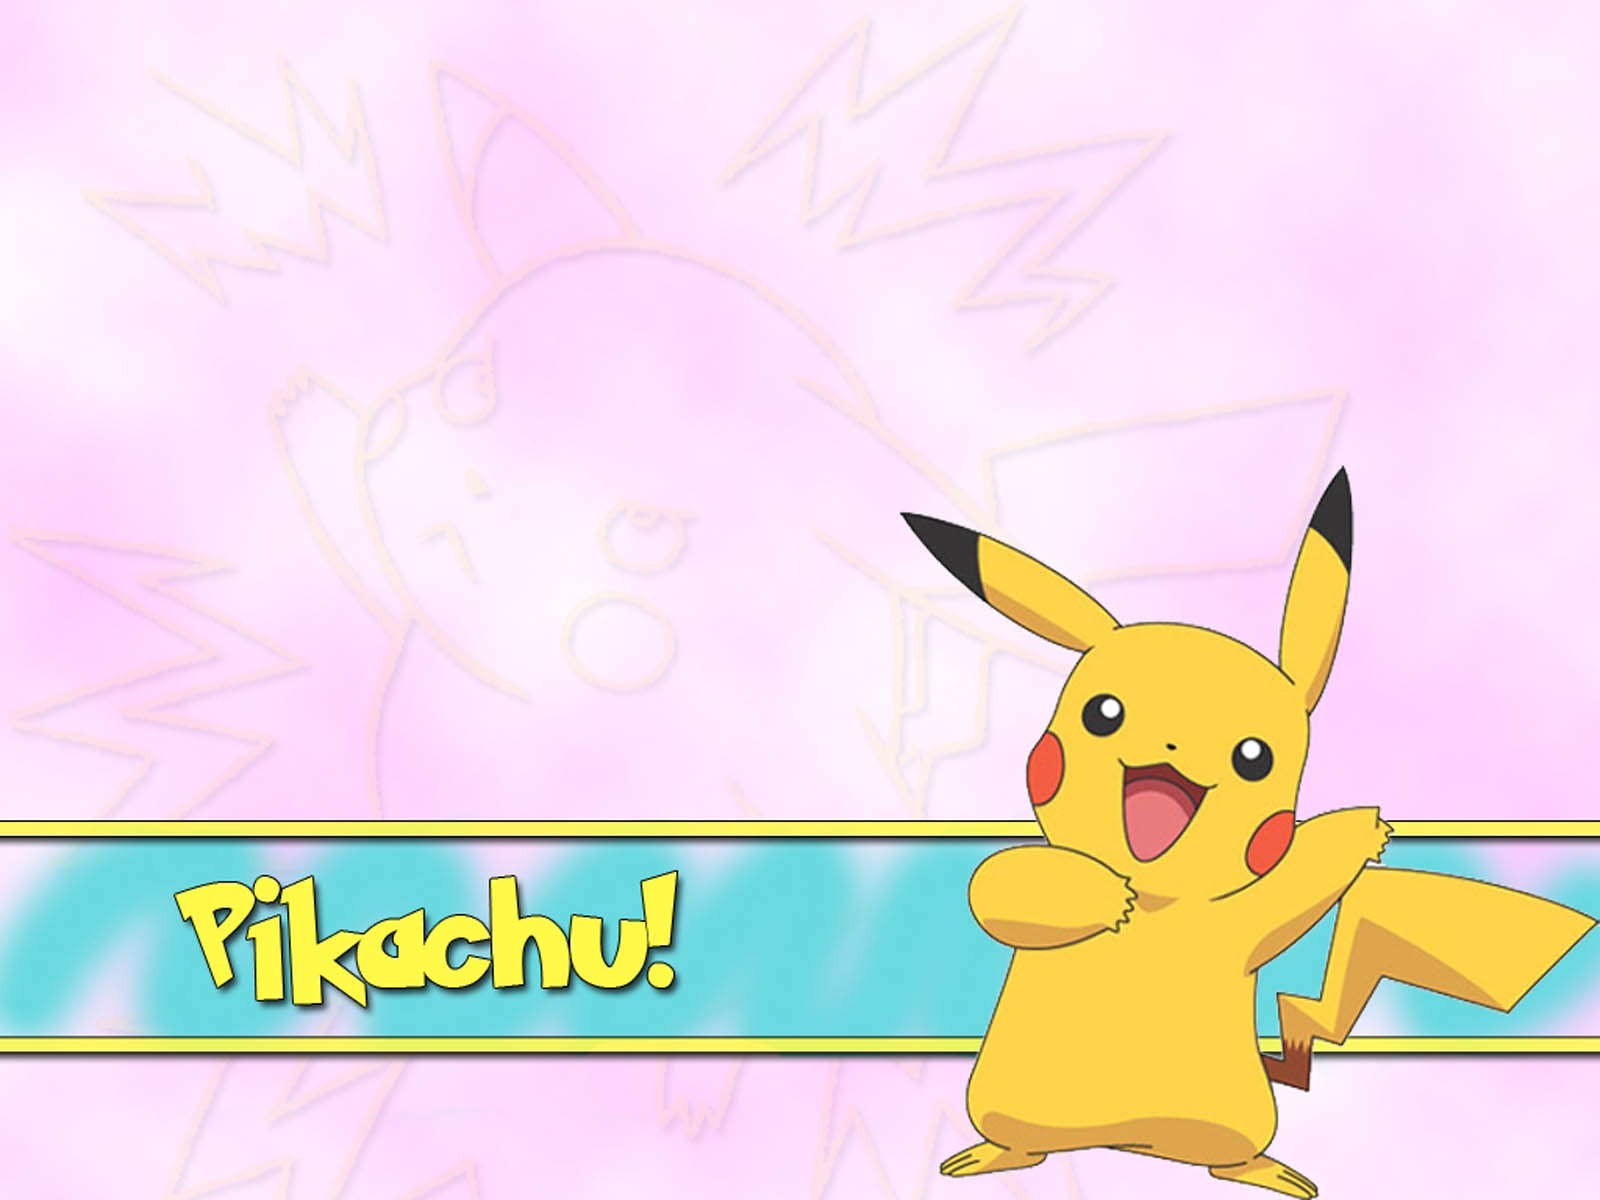 wallpapers Pikachu Pokemon 1600x1200